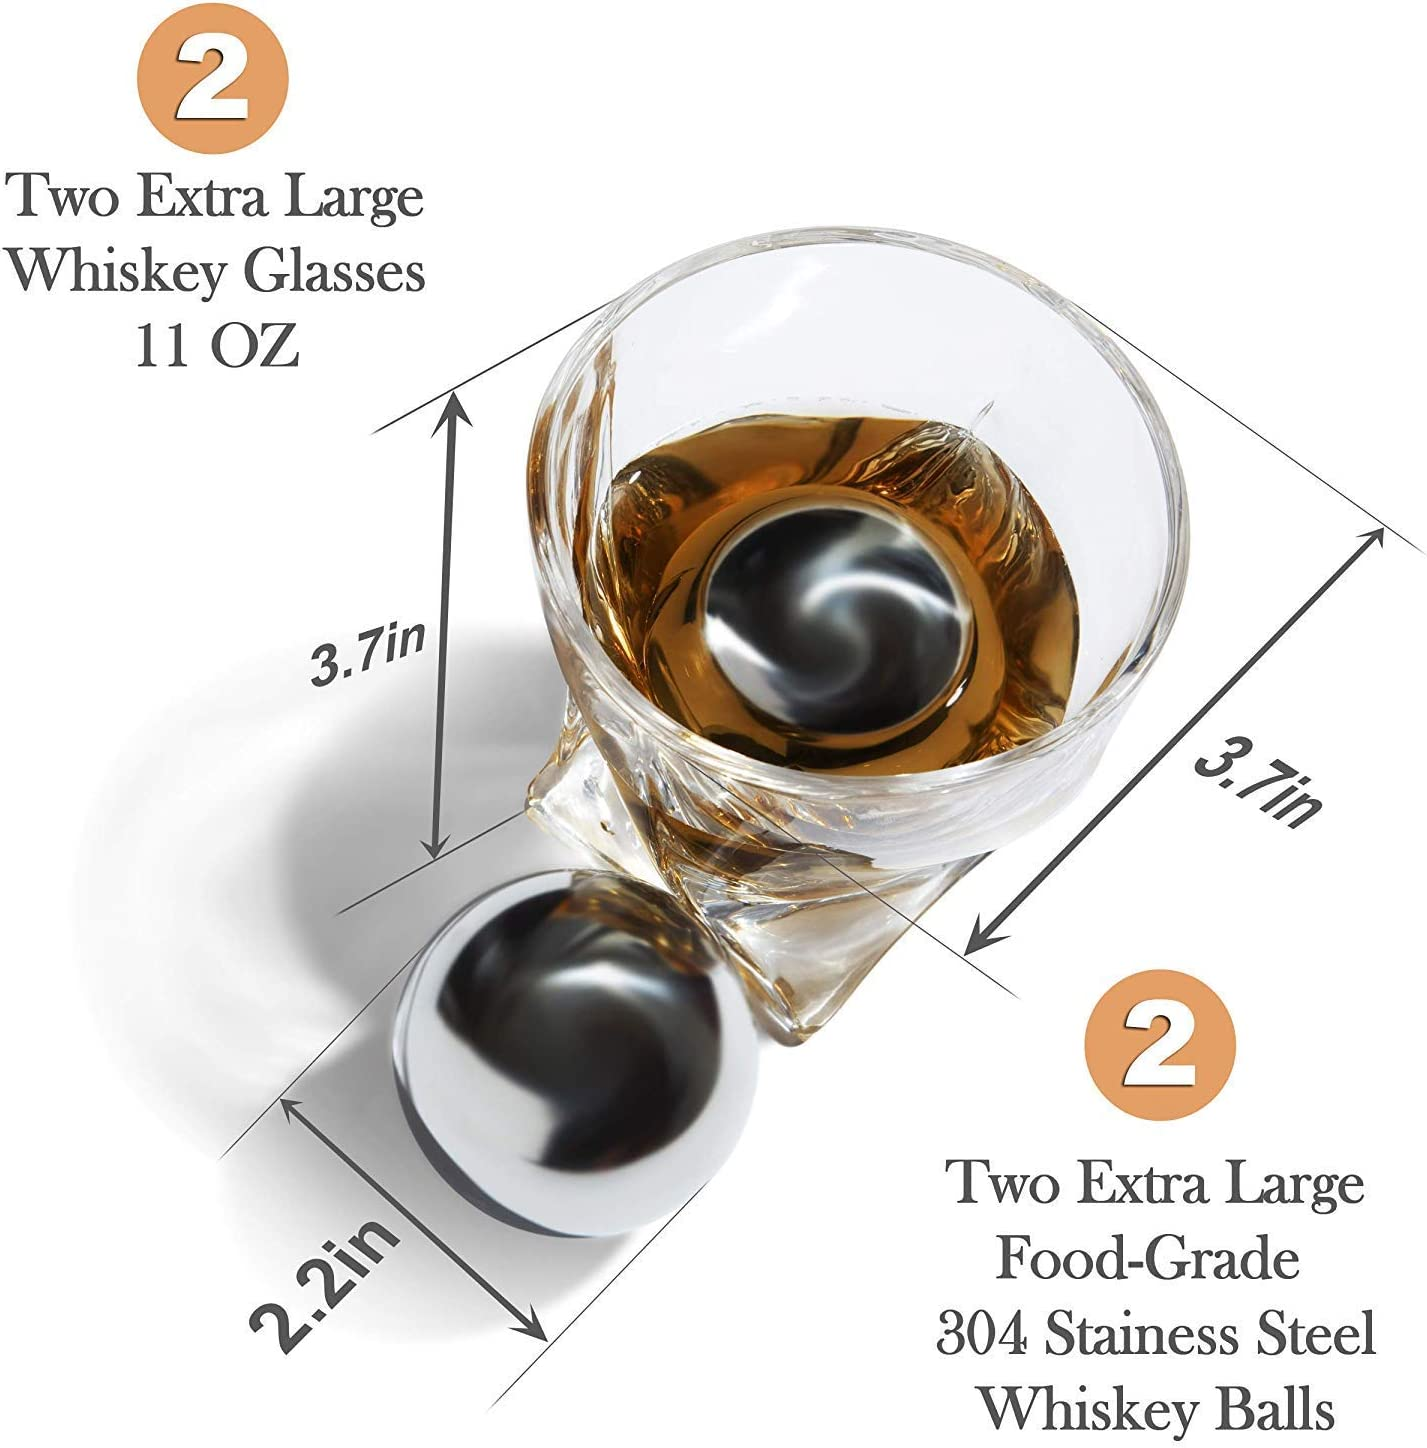 Premium Whiskey Stones Gift Set for Men – 2 King-Sized Chilling Stainless-Steel Whiskey Balls – 11 oz 2 Large Twisted Whiskey Glasses, Slate Stone Coasters, Tongs – Luxury Set in Real Pine Wood Box